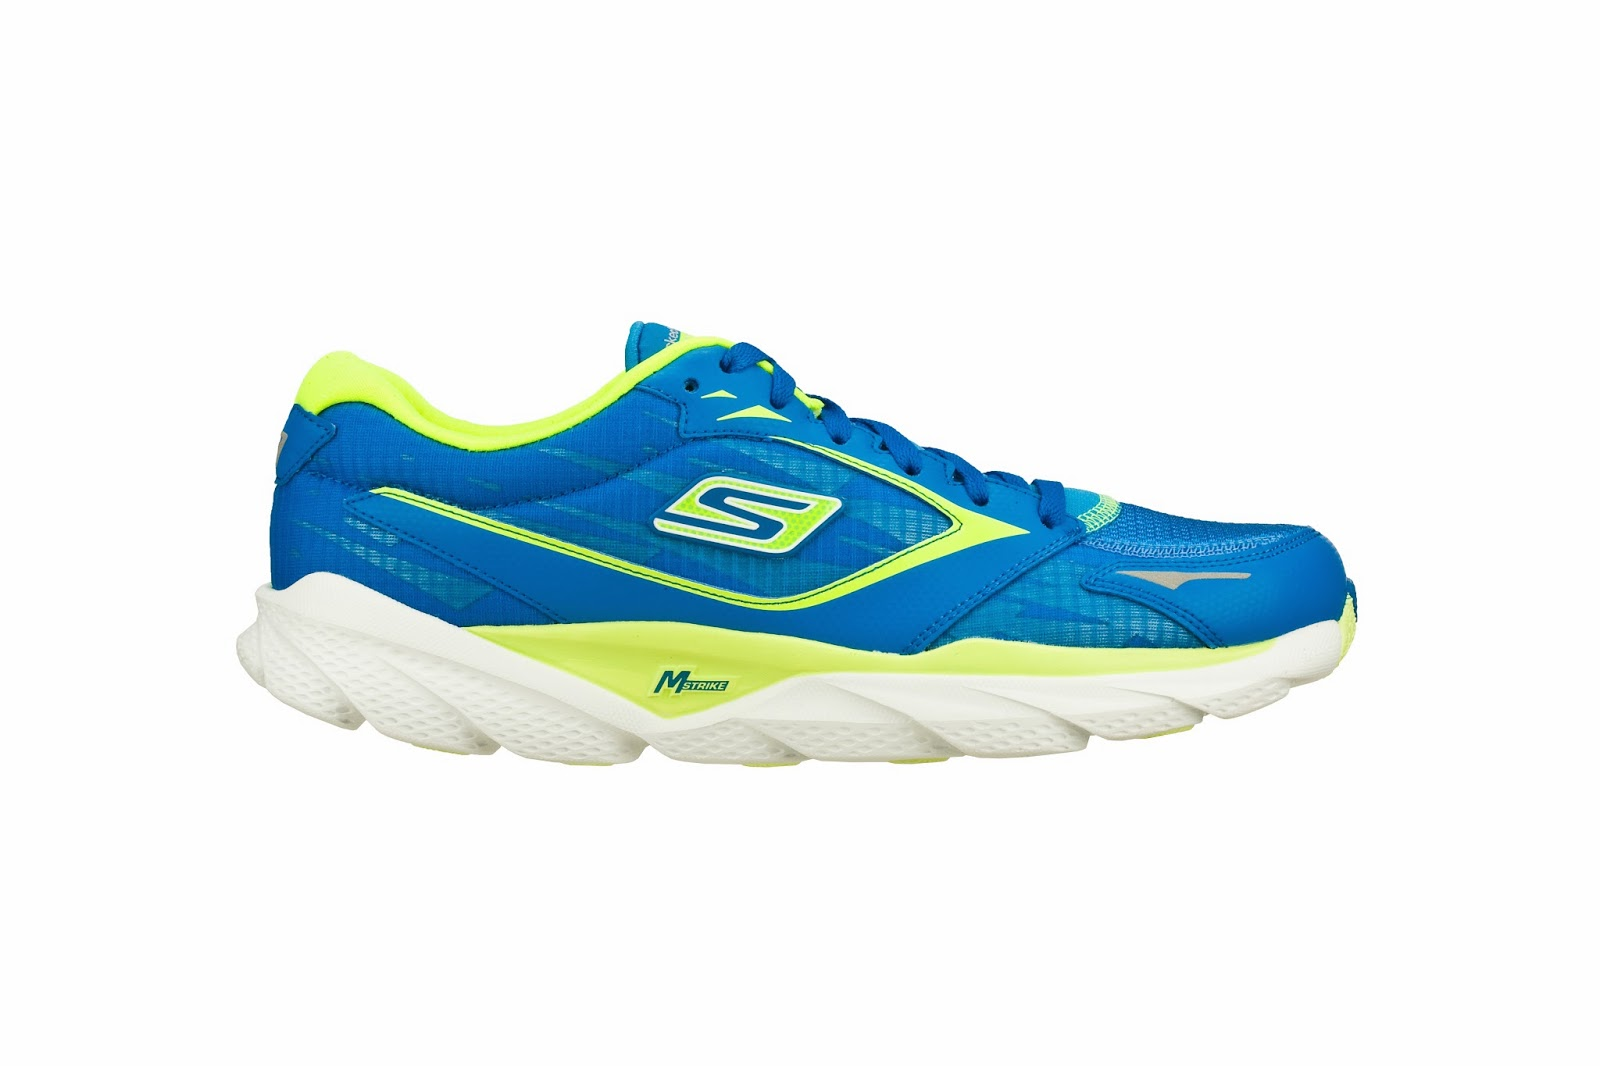 ������� ������� ��������� Sketchers Go run Ride 3 �������